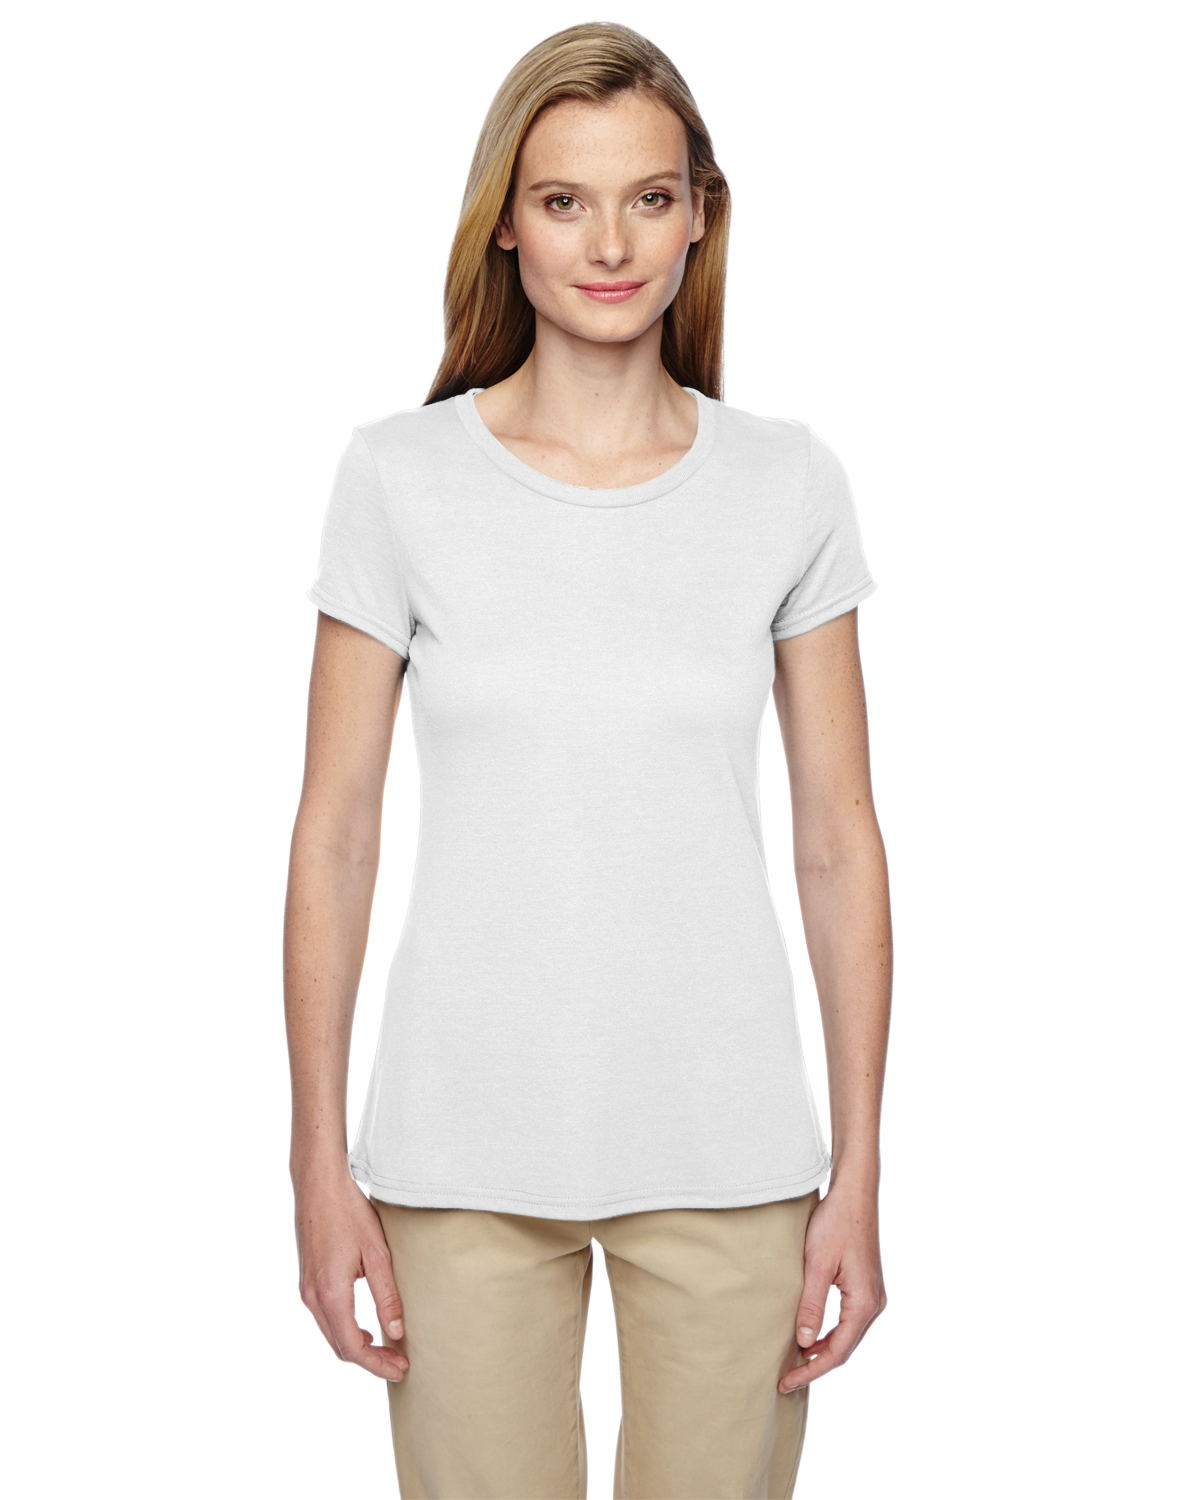 Jerzees 21WR - Ladies' 5.3 oz.100% Polyester SPORT T-Shirt